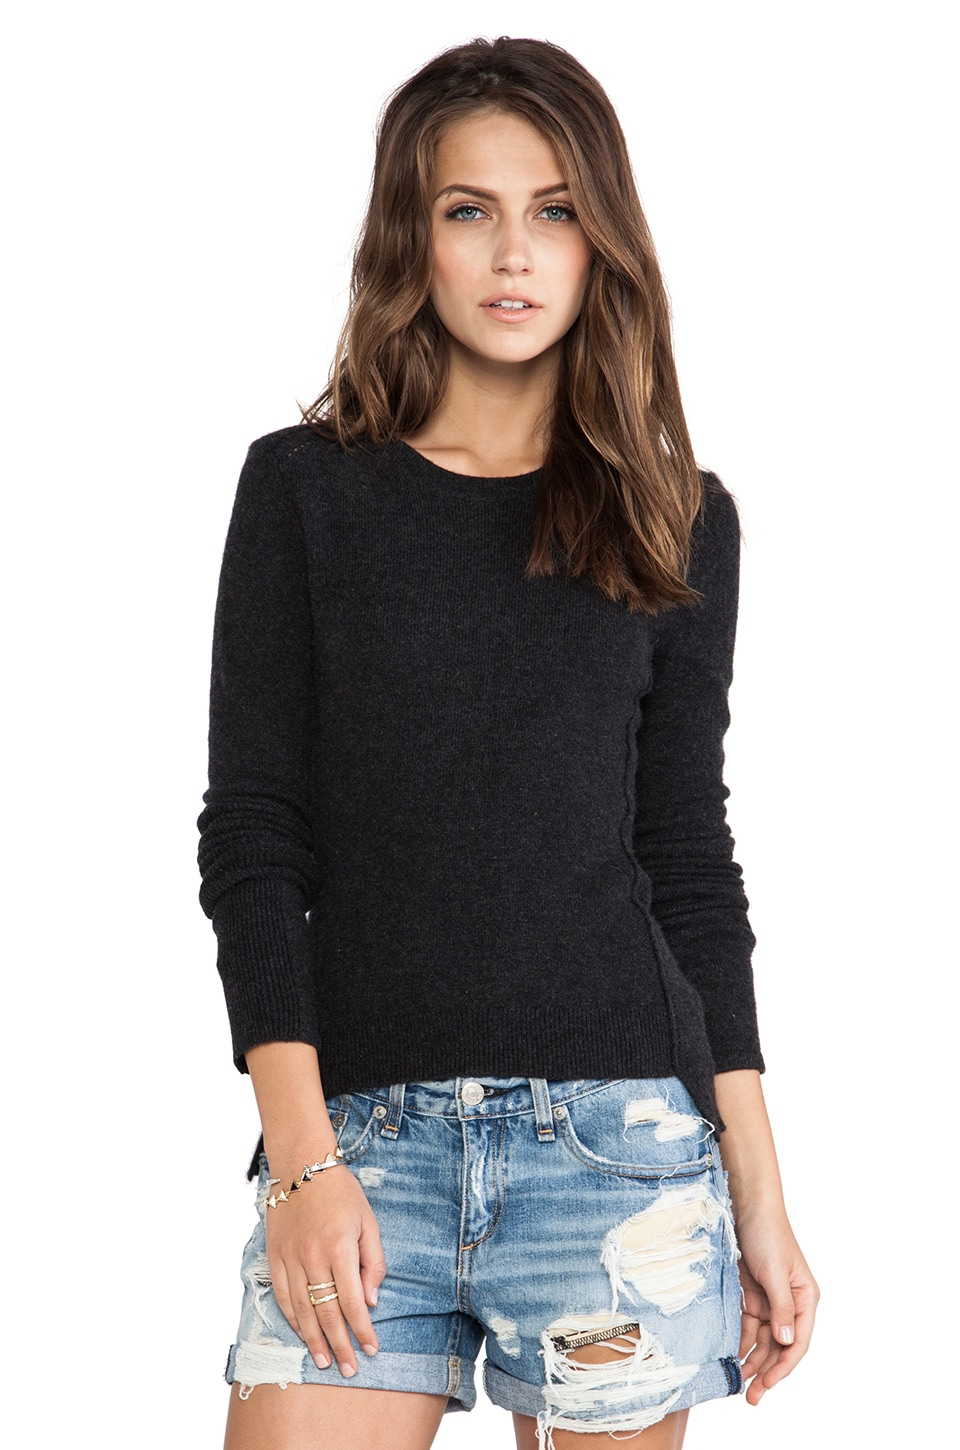 Inhabit Cashmere Crewneck Sweater in Charcoal